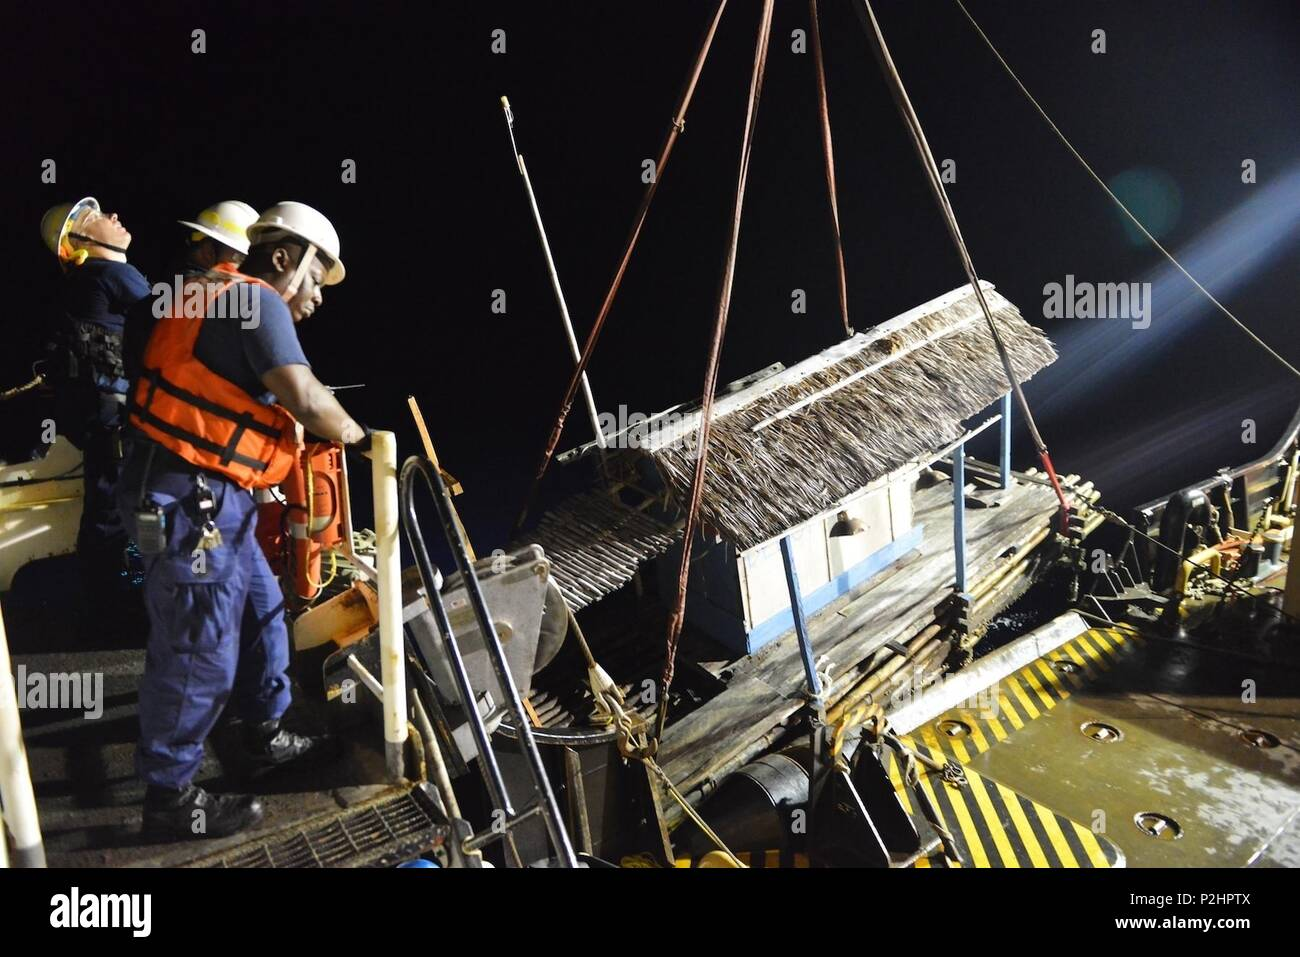 U.S. Coast Guard Senior Chief Petty Officer Mark Petty, a boatswain's mate, checks the crane as the crew of the buoy tender USCGC Sequoia (WLB-215) recovers an illegal fish aggregating device located in the Palau exclusive economic zone that presented a hazard to navigation Sept. 3, 2016. Fishermen use well lit FADs to attract fish to one spot to catch, a practice which is illegal in the Palau EEZ. (U.S. Coast Guard photo by Chief Petty Officer Sara Mooers) - Stock Image